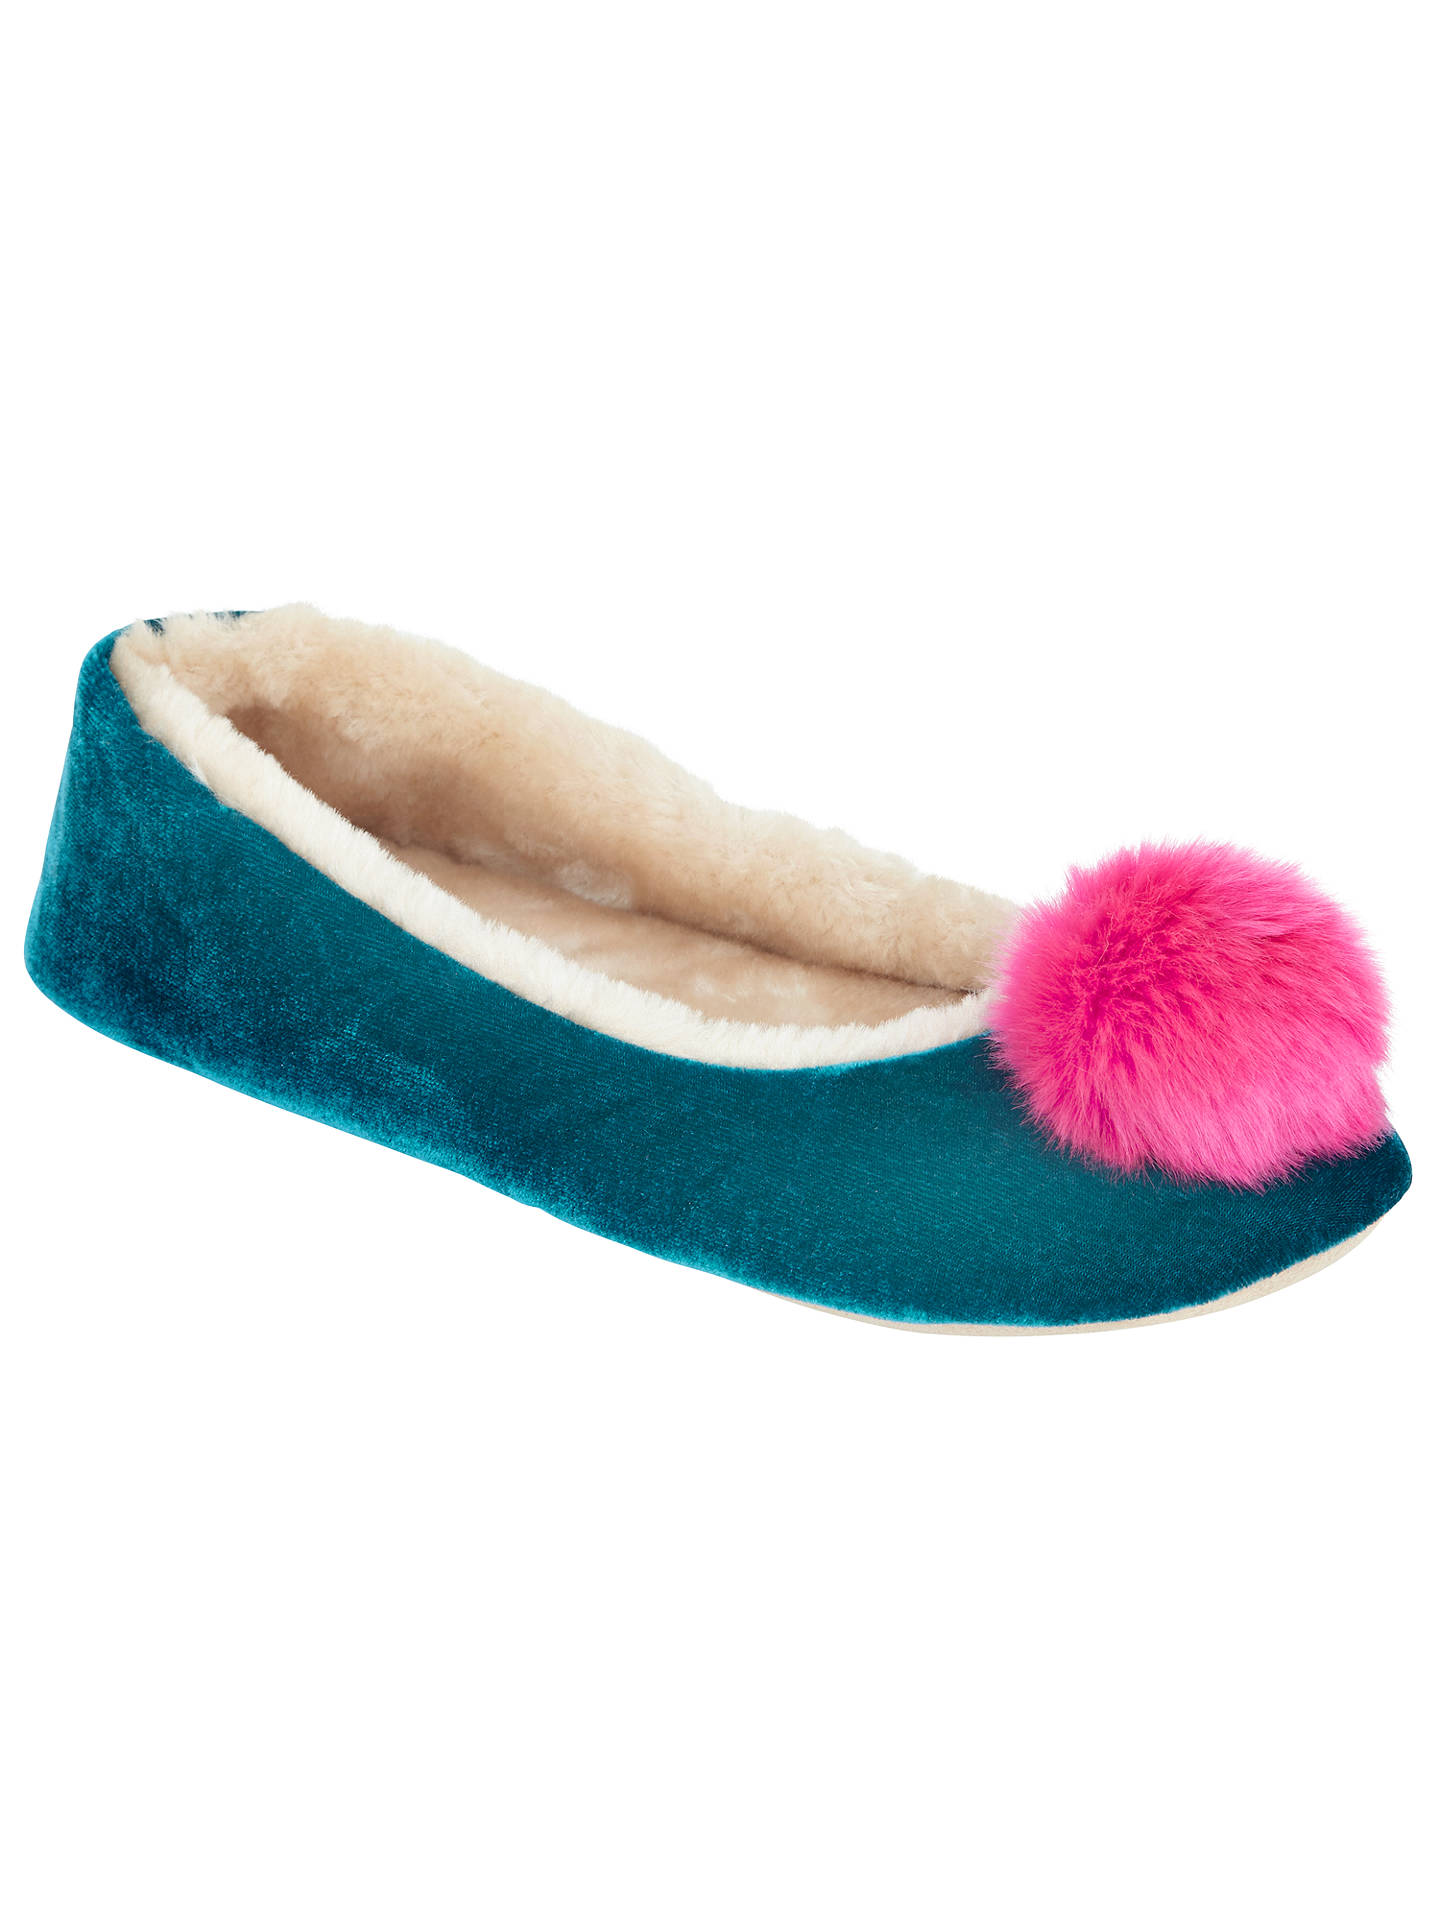 Buy John Lewis Velvet Pom Pom Ballerina Slippers, Teal, 3-4 Online at johnlewis.com